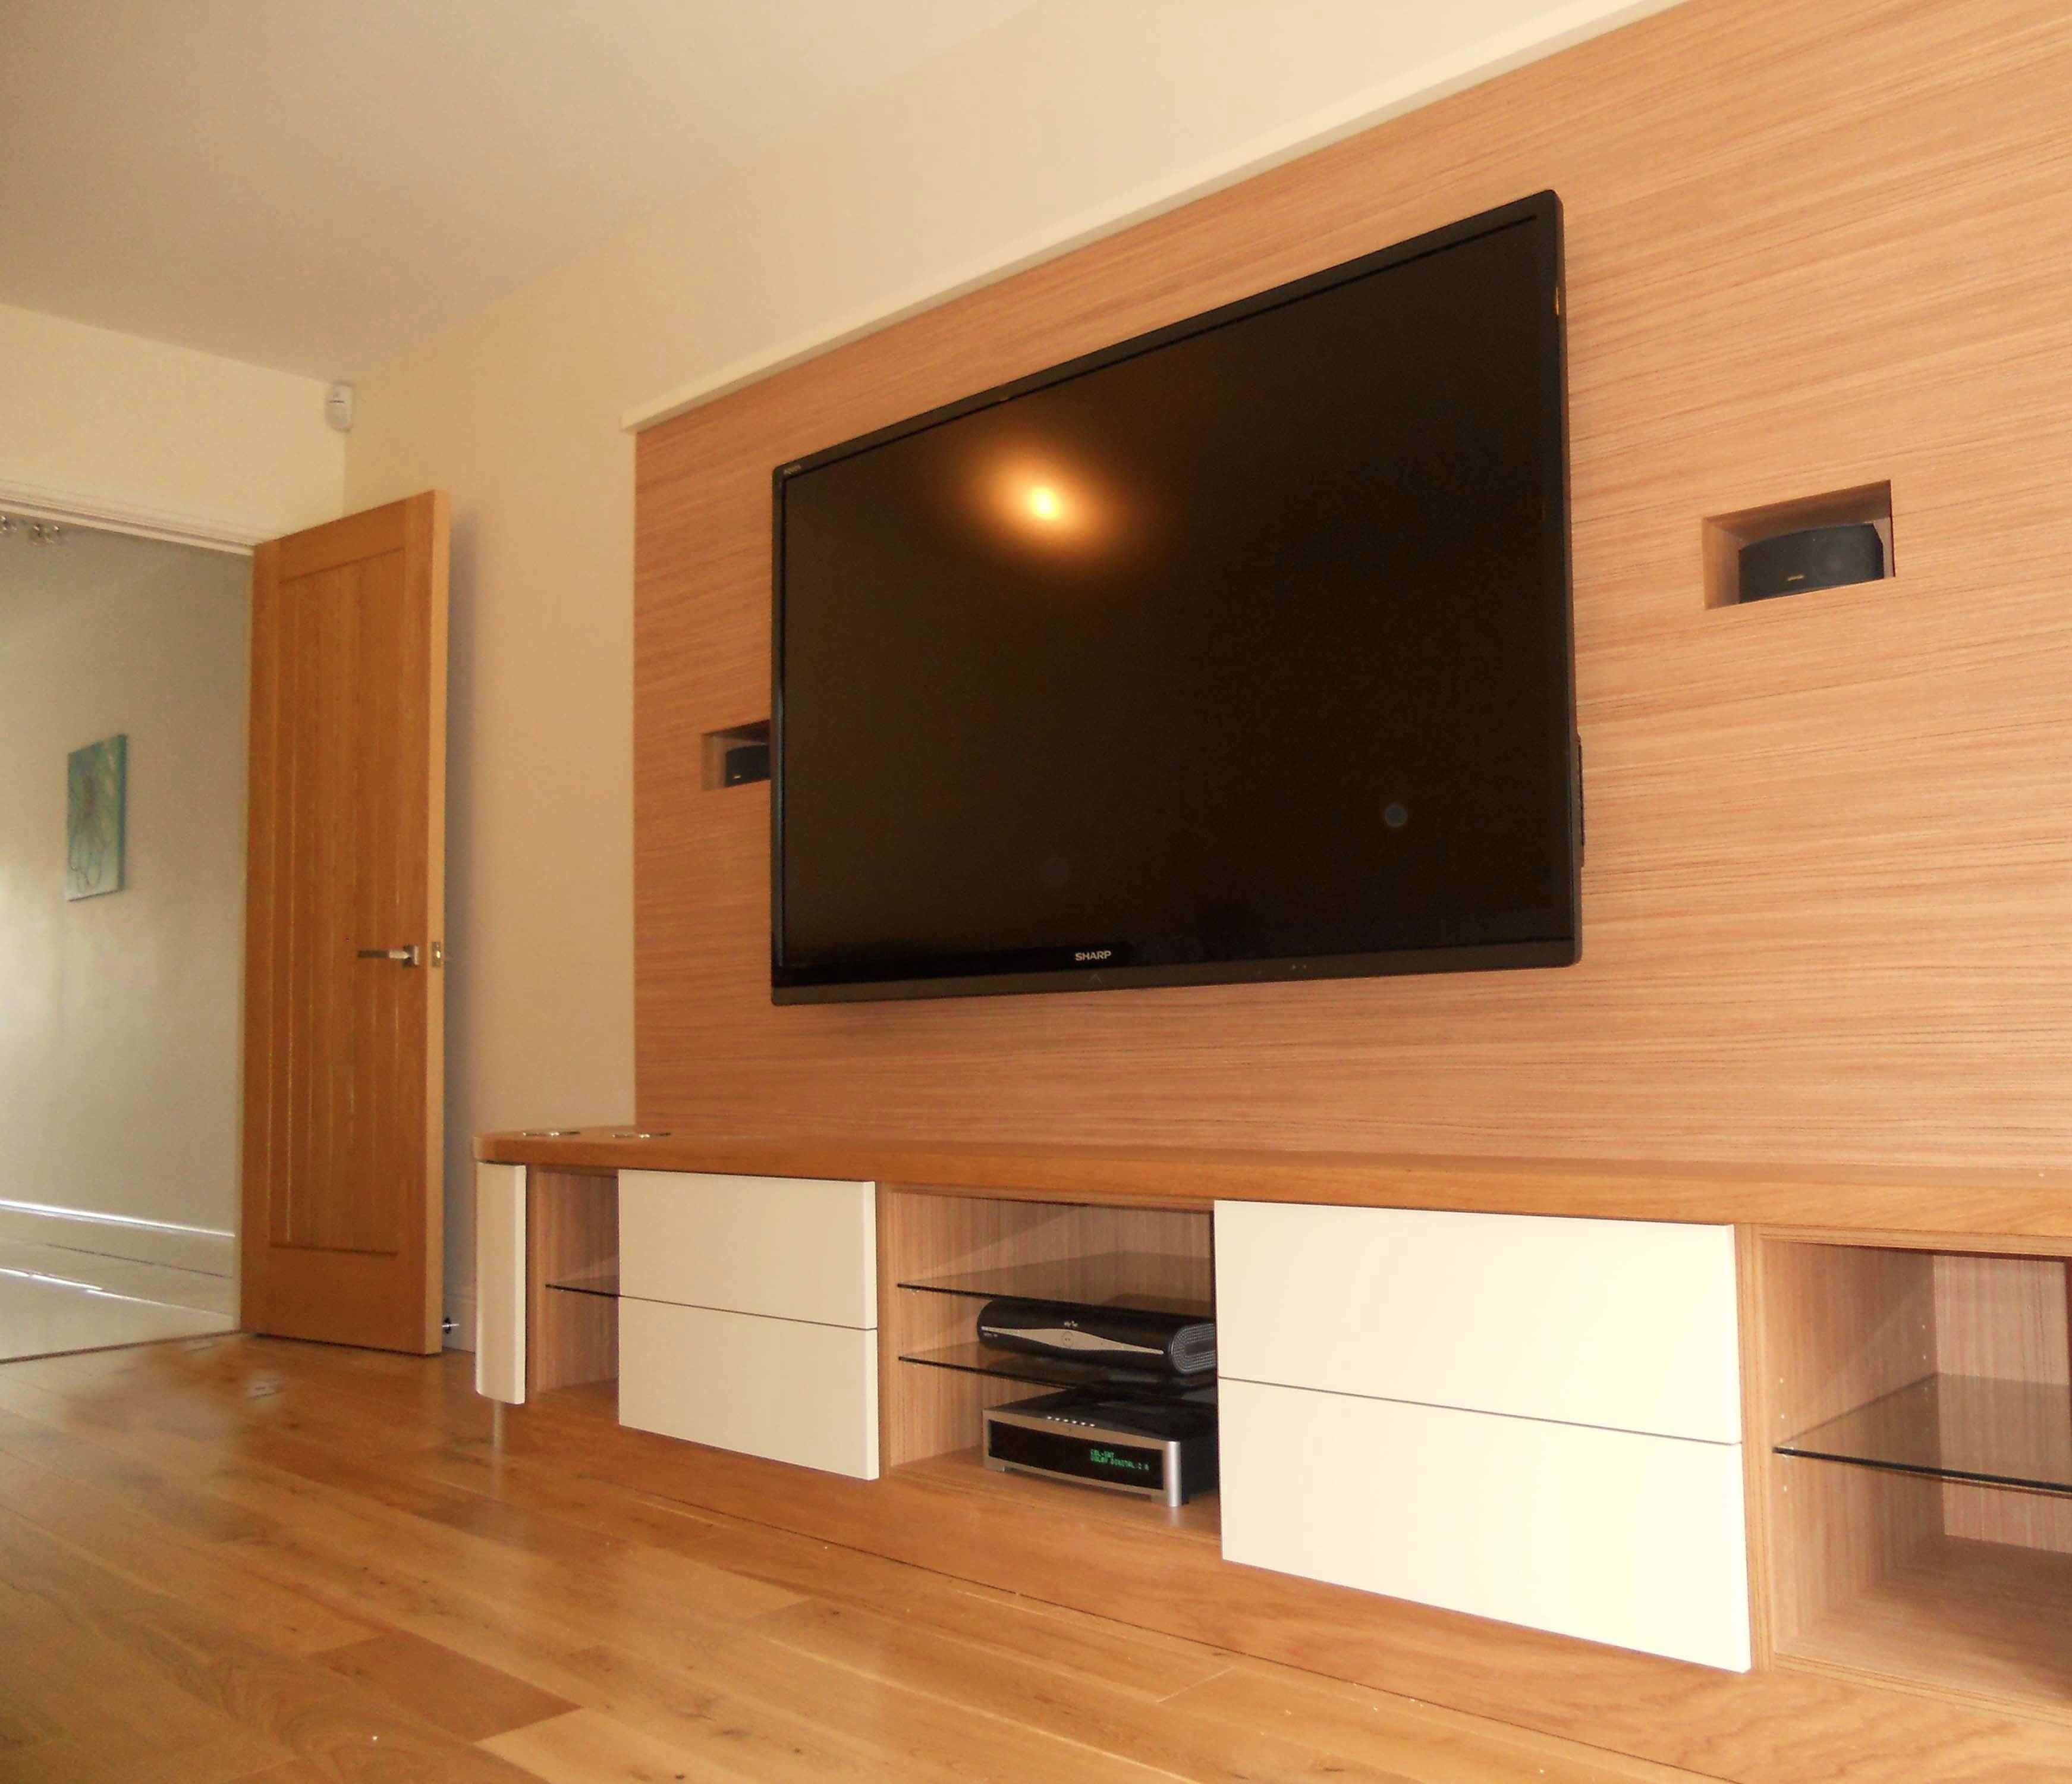 Painting of Unique Wood Wall Covering Ideas